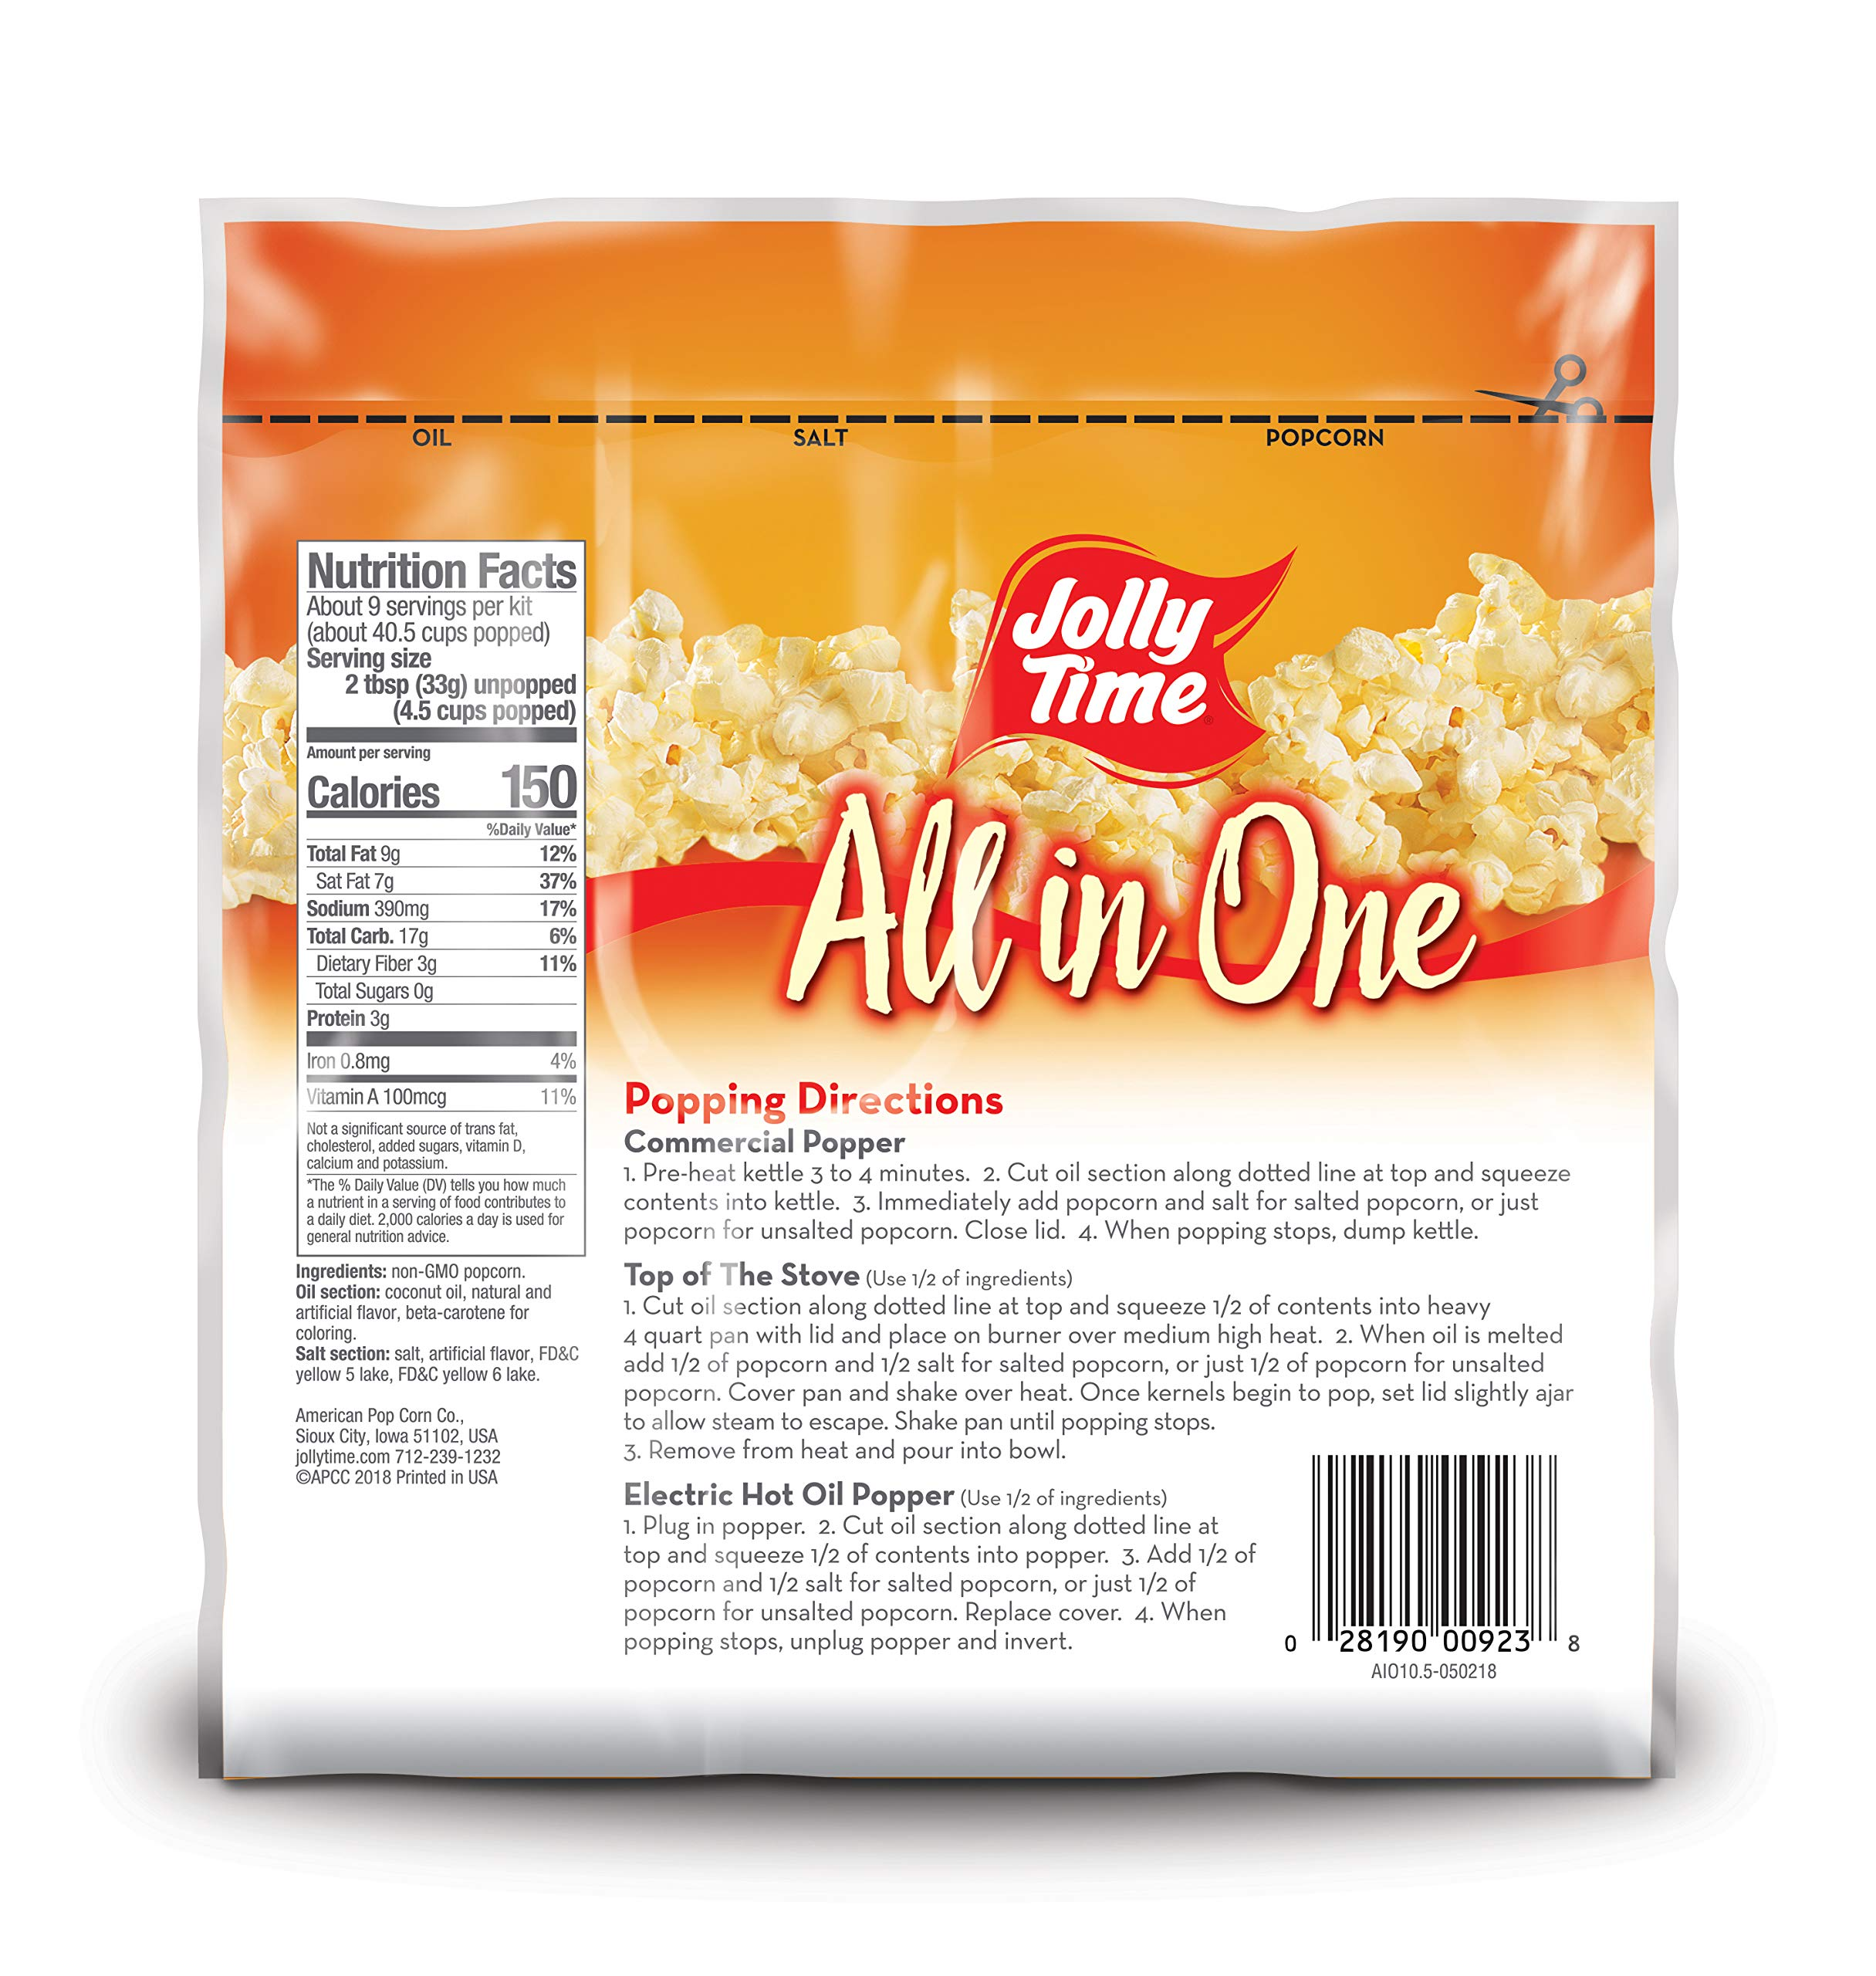 JOLLY TIME All in One Kit for 8 oz. Popcorn Machine | Portion Packet with Kernels, Oil and Salt for Commercial, Movie Theater or Air Popper (Net Wt. 10.5 oz. Each, Pack of 24) by Jolly Time (Image #3)